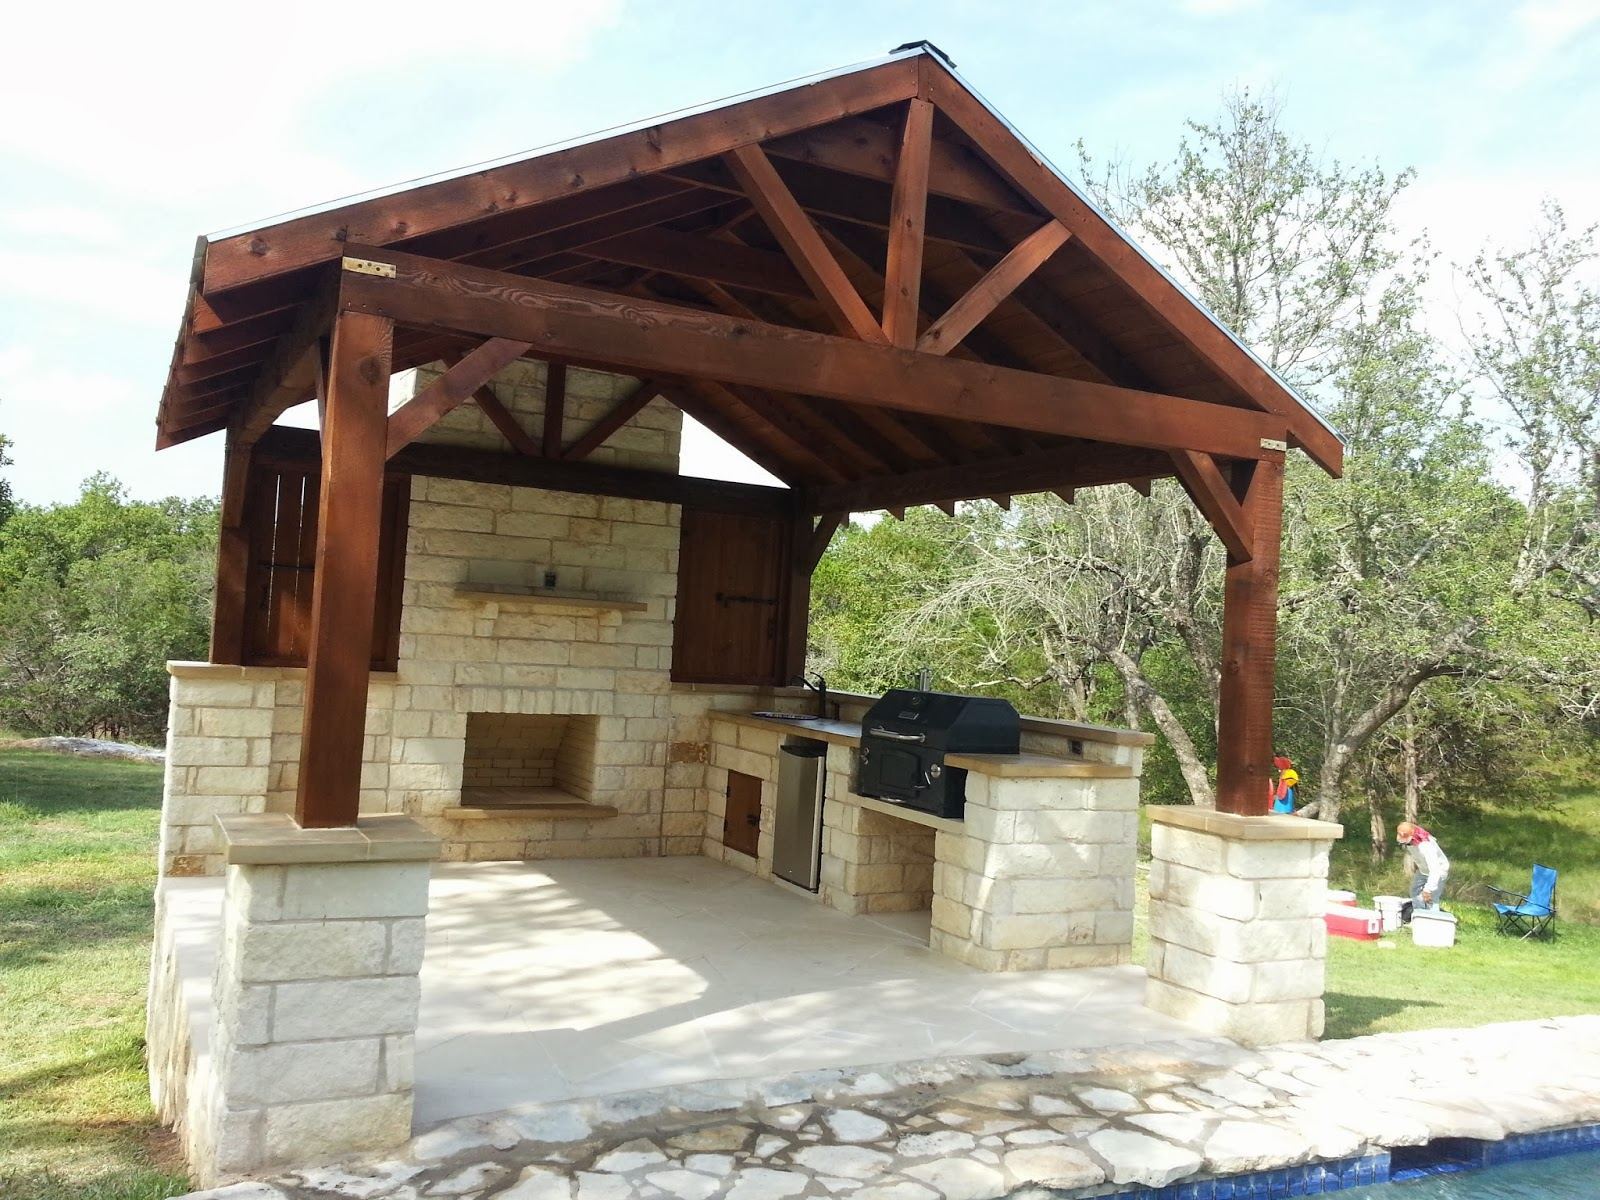 Austin Outdoor Kitchens Masonry Contractor In Georgetown Texas Masonry Contractor In